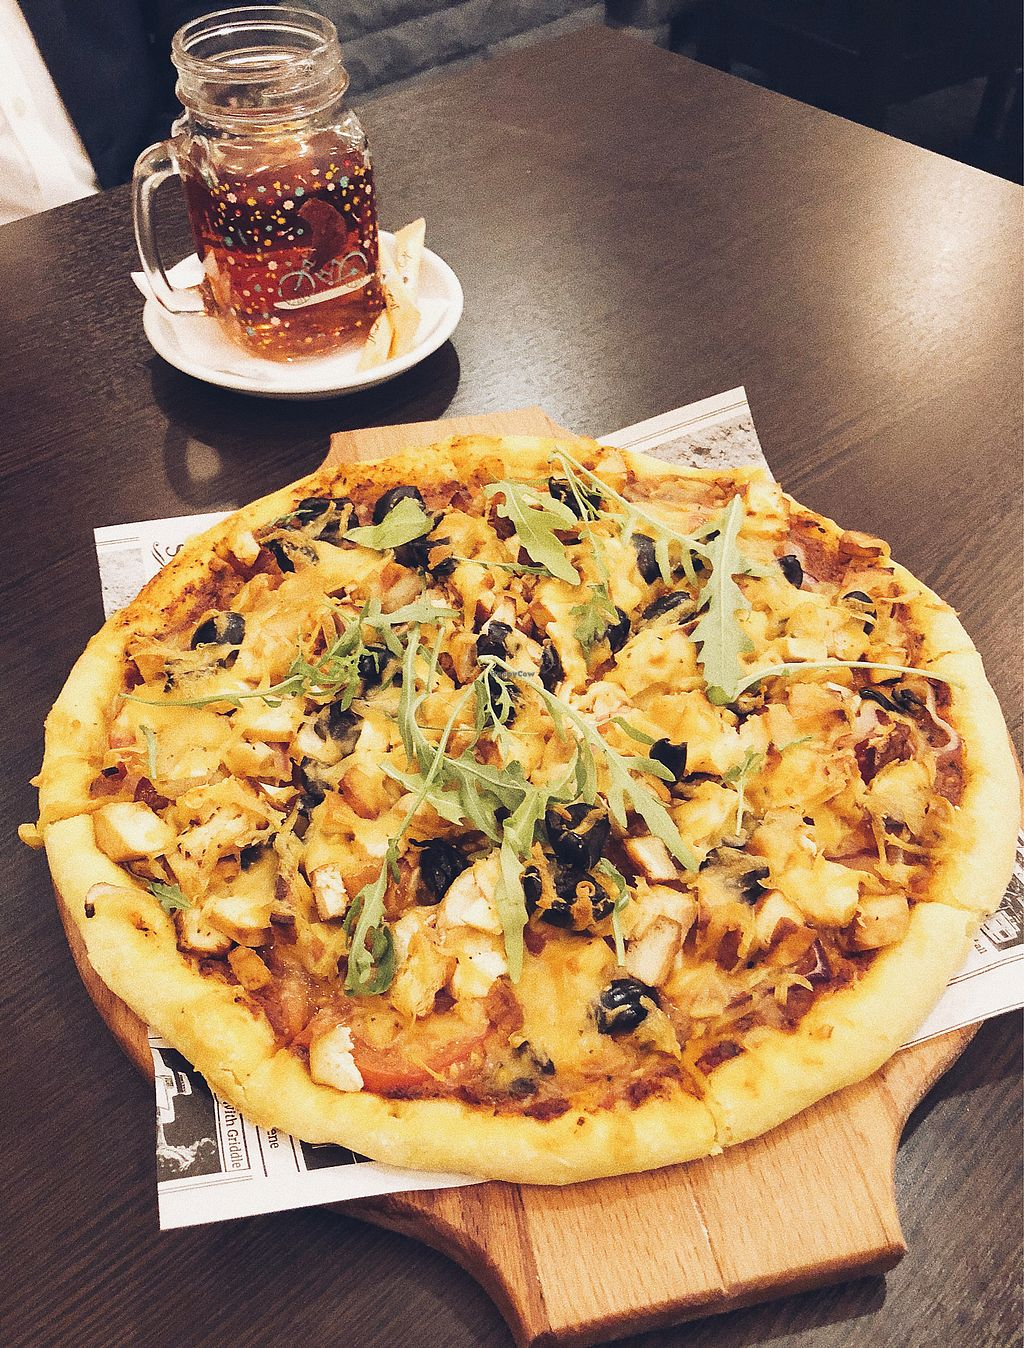 """Photo of Ugol  by <a href=""""/members/profile/Evgenia"""">Evgenia</a> <br/>Vegan pizza <br/> December 14, 2017  - <a href='/contact/abuse/image/86459/335586'>Report</a>"""